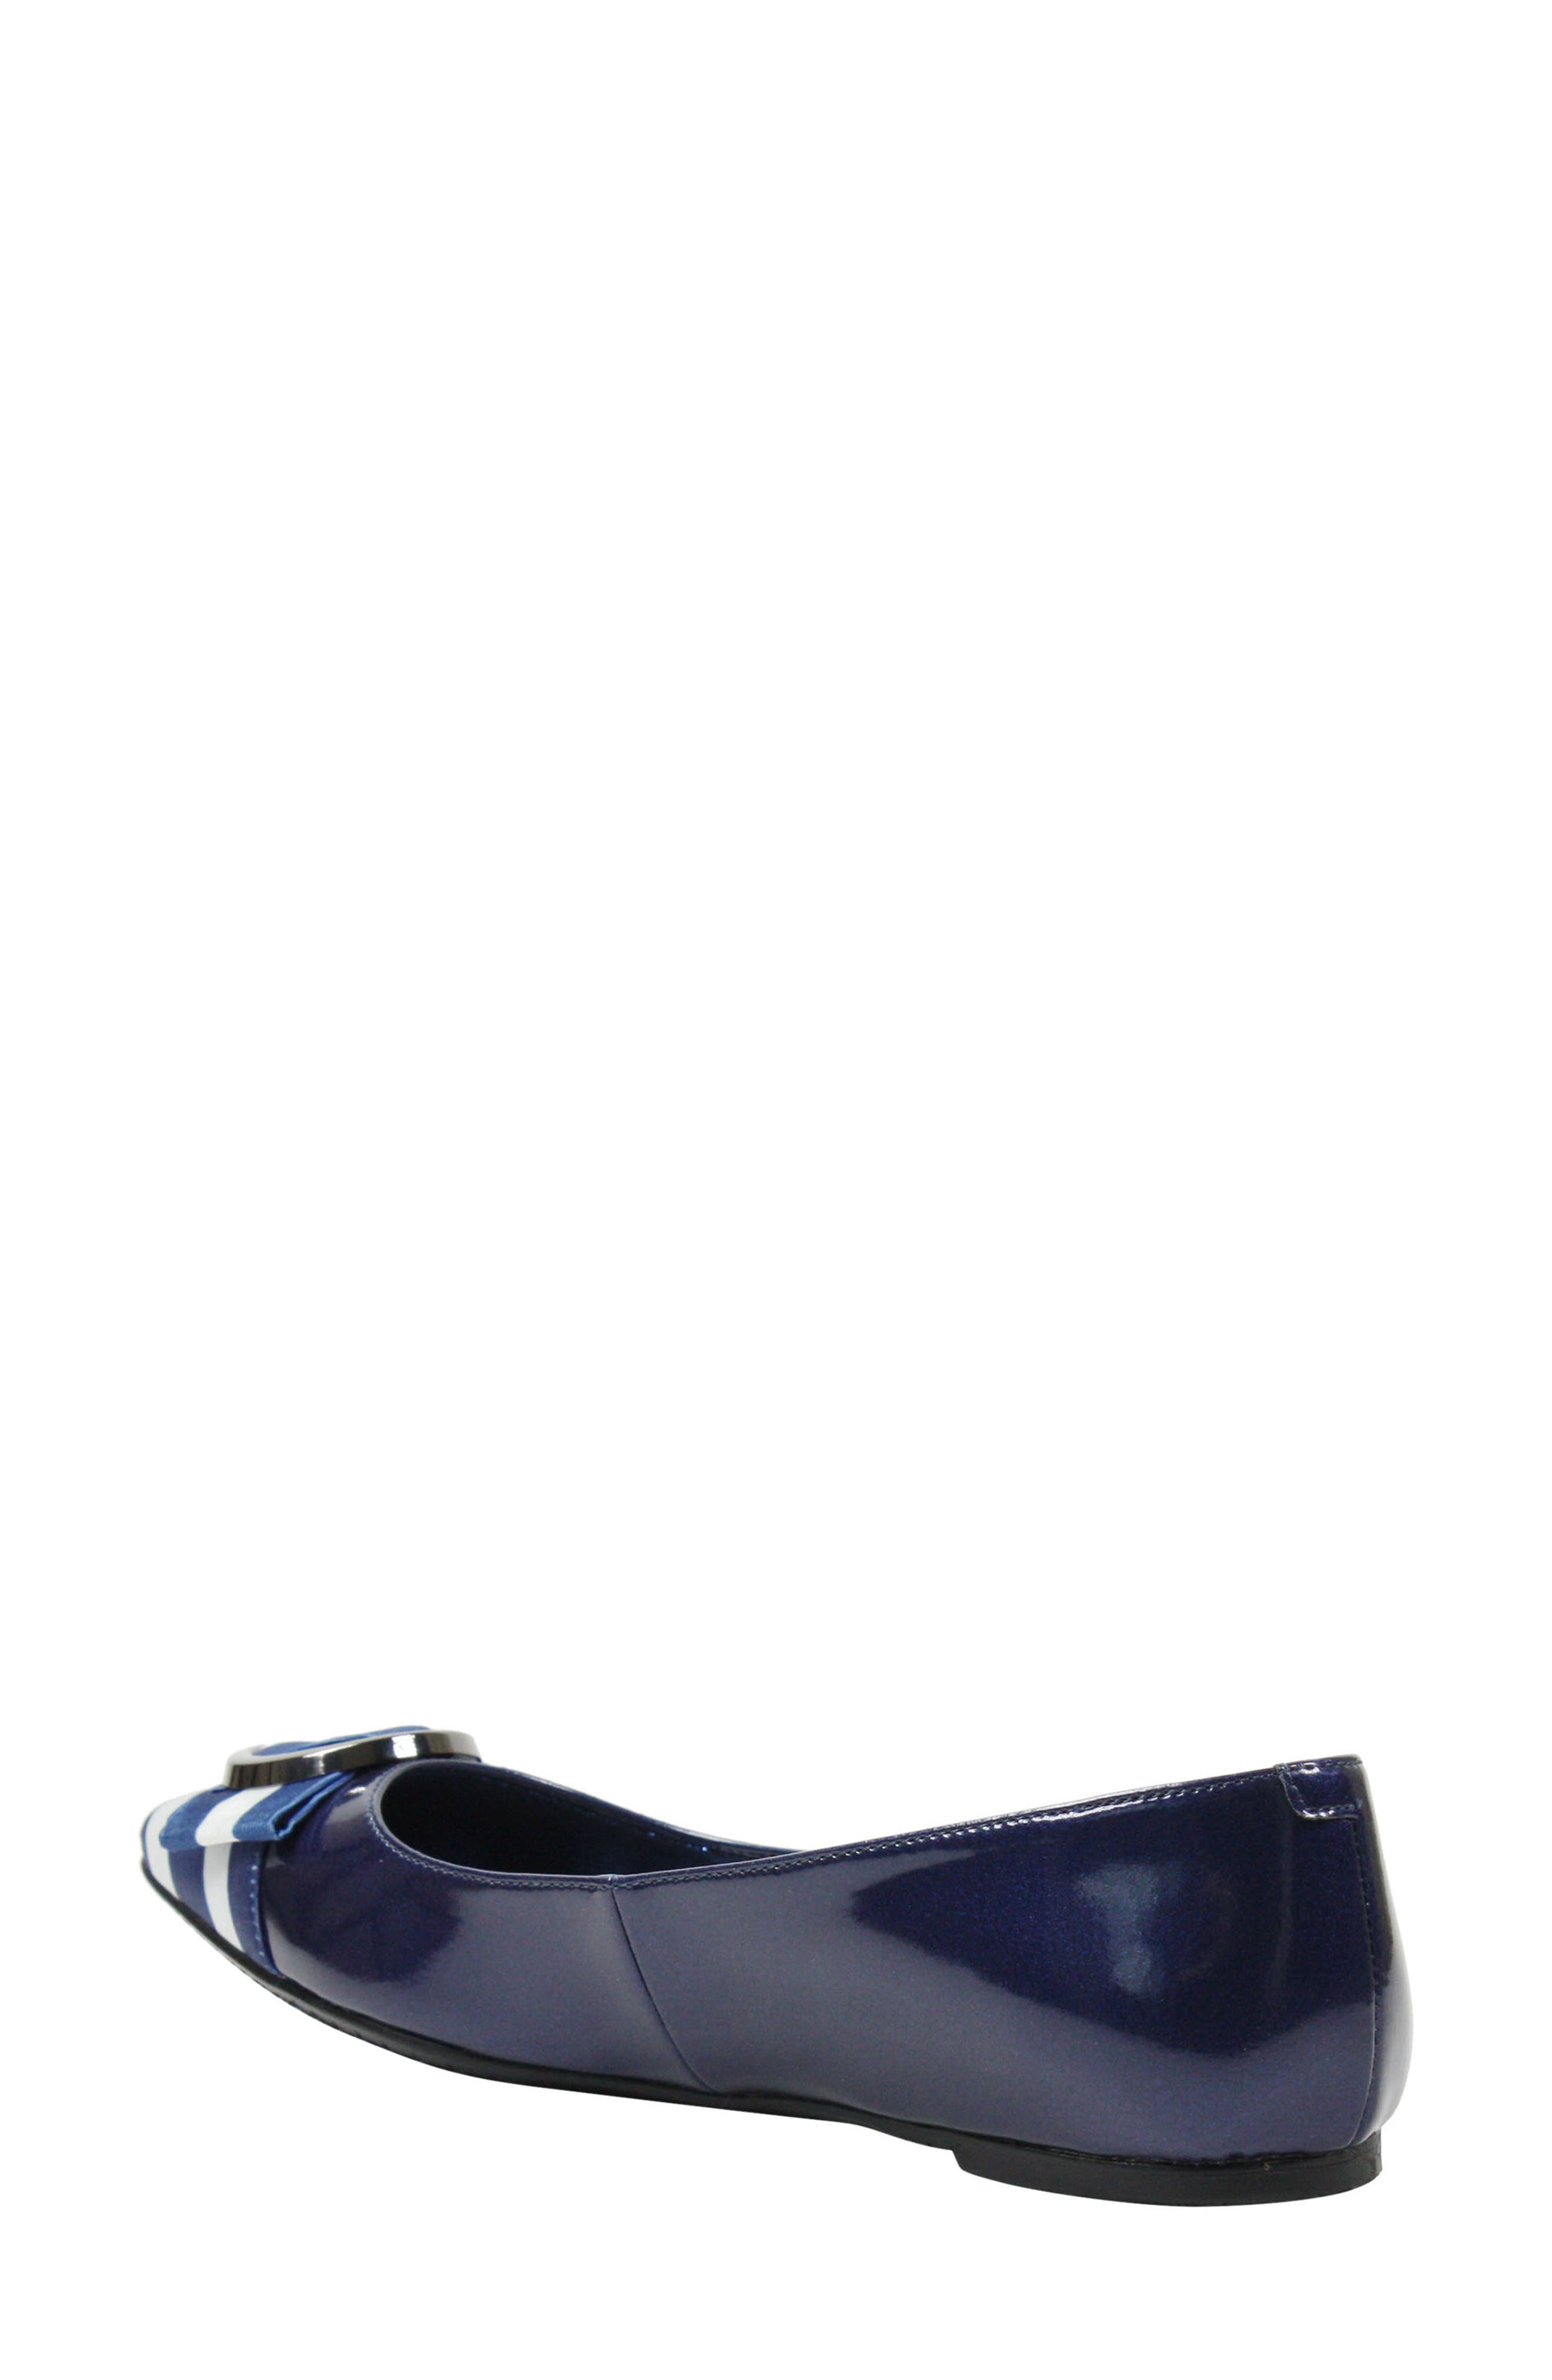 Bessee Flat,                             Alternate thumbnail 2, color,                             Navy/ White Faux Leather